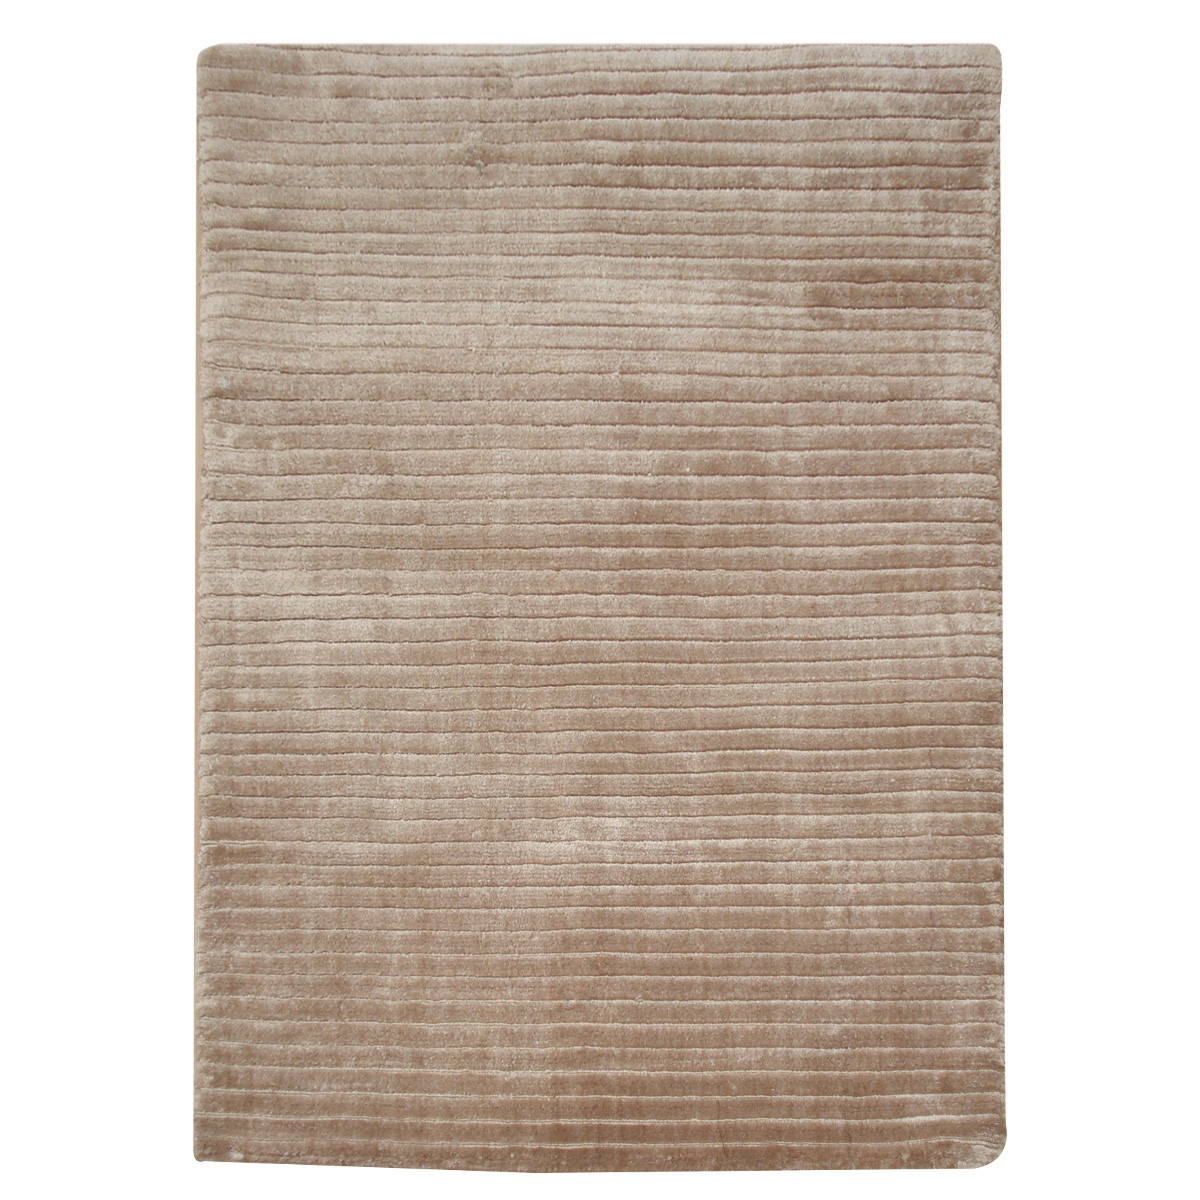 Rosnay Hand Knotted Modern Rug, 170x120cm, Cappuccino